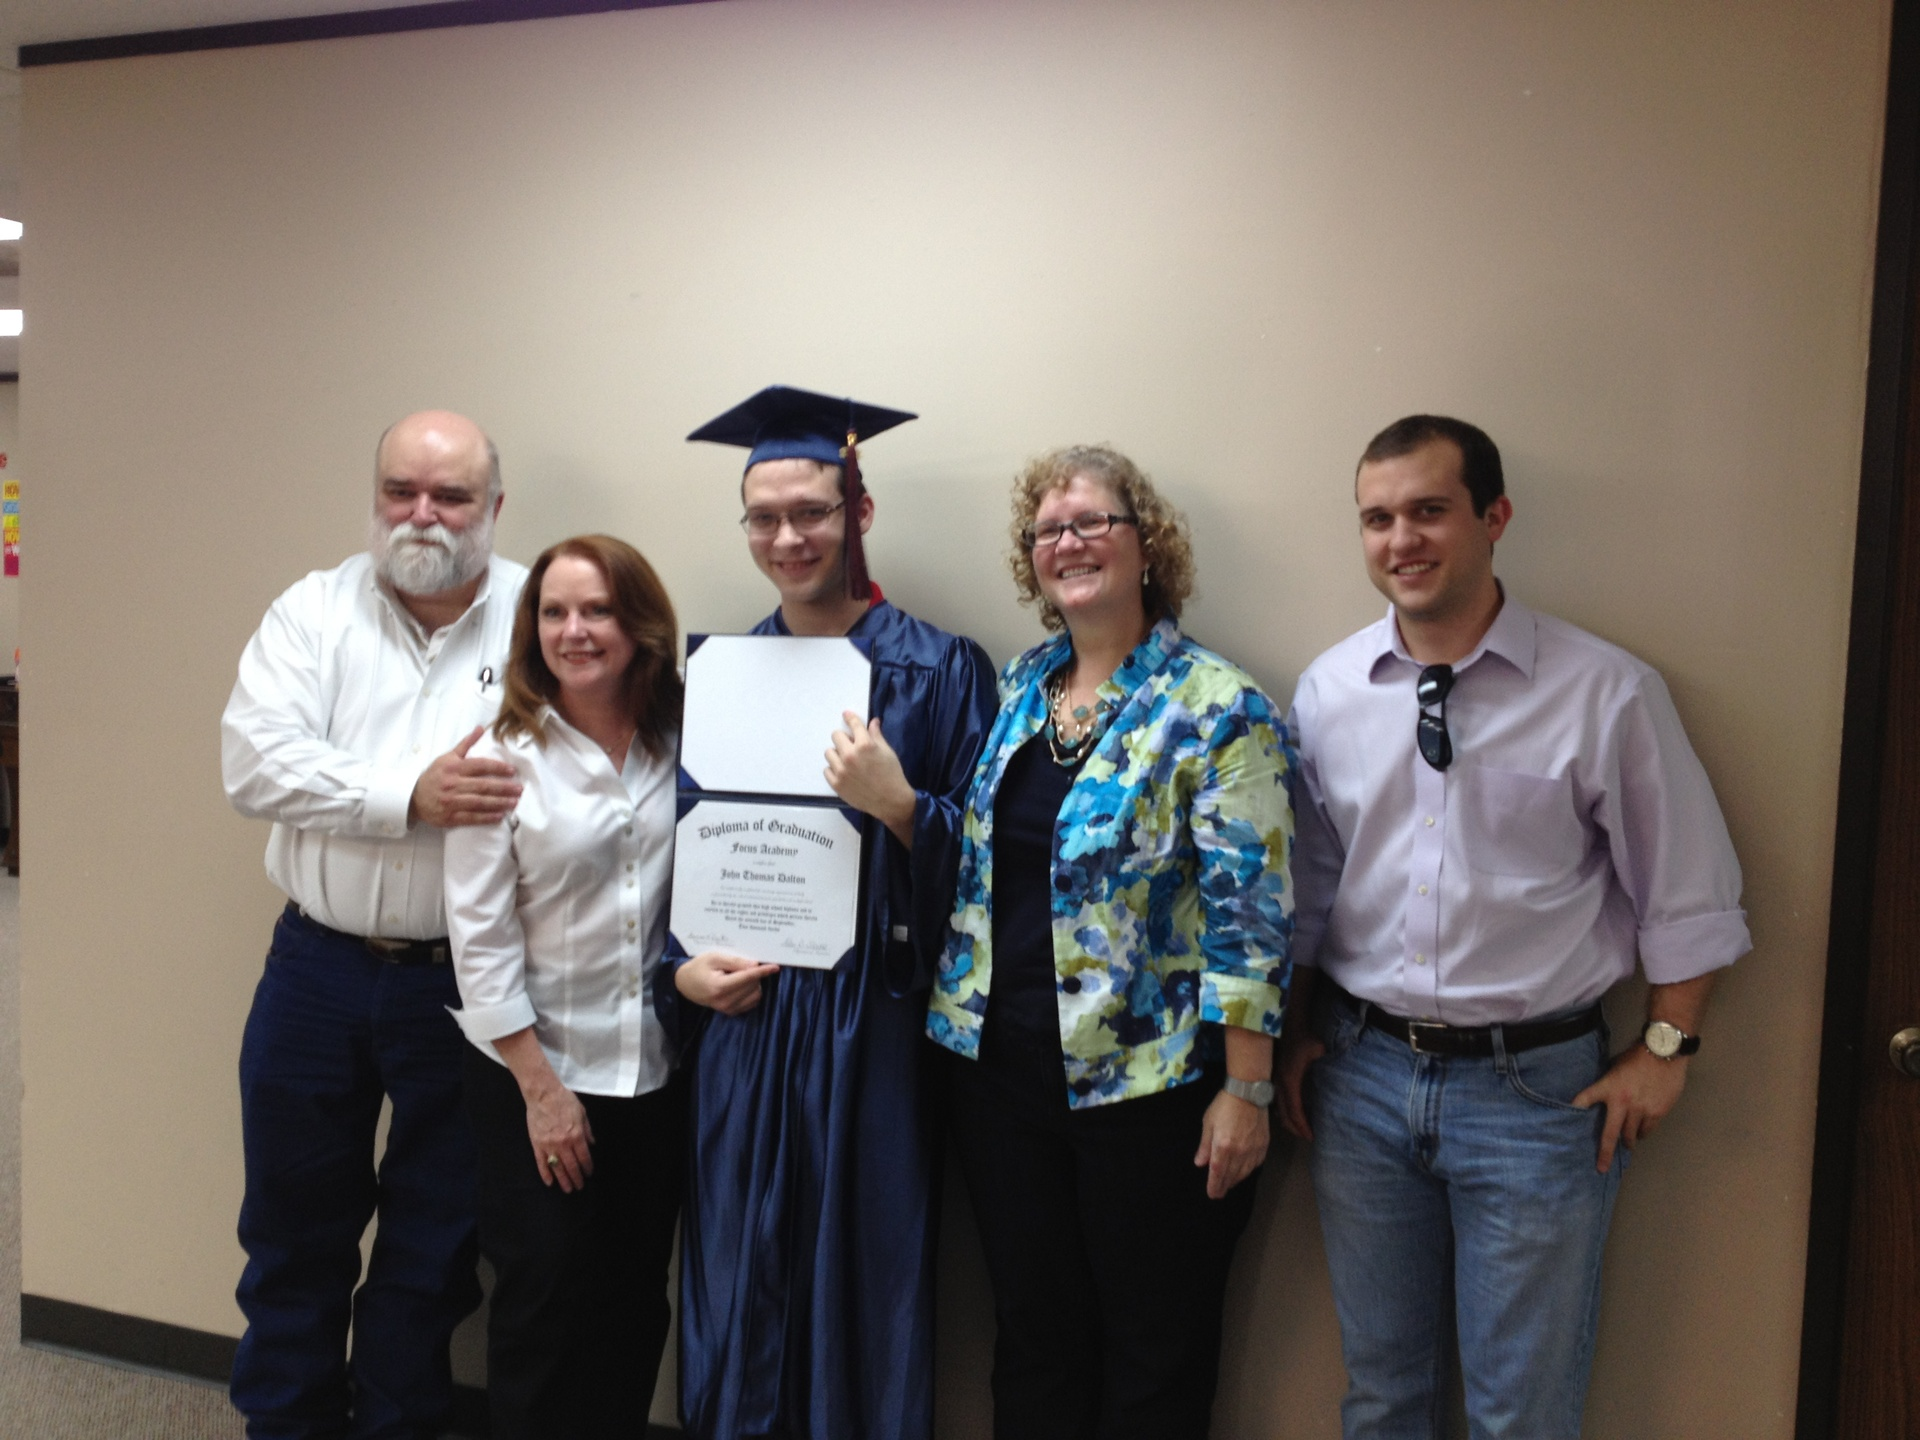 Our first Katy Grad and family